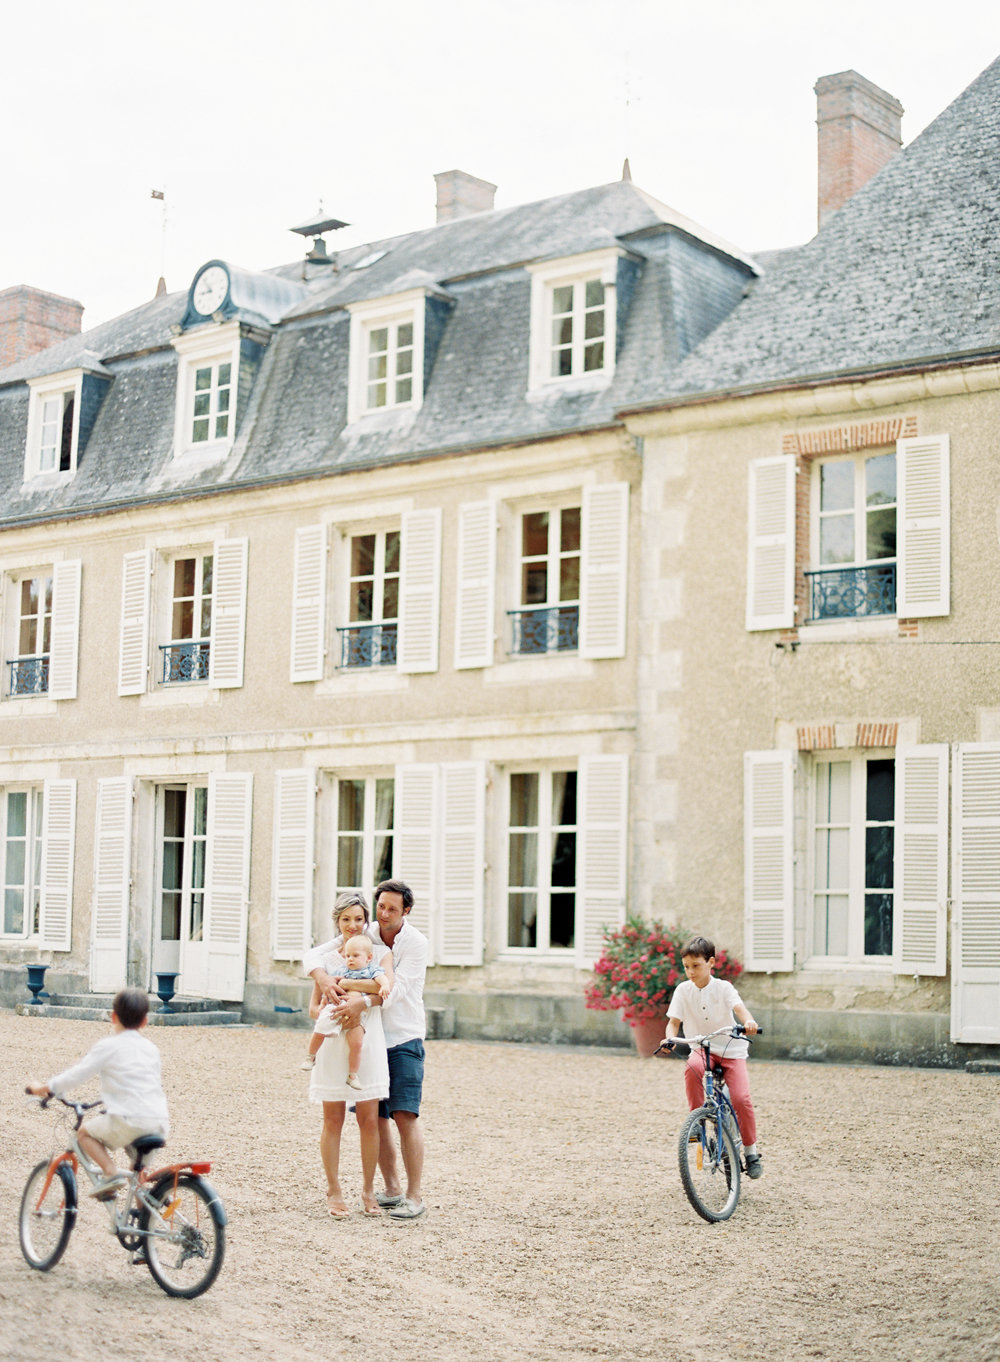 Summertime with the DeVerdun's at Chateau de Bouthonvilliers | cottagehillmag.com